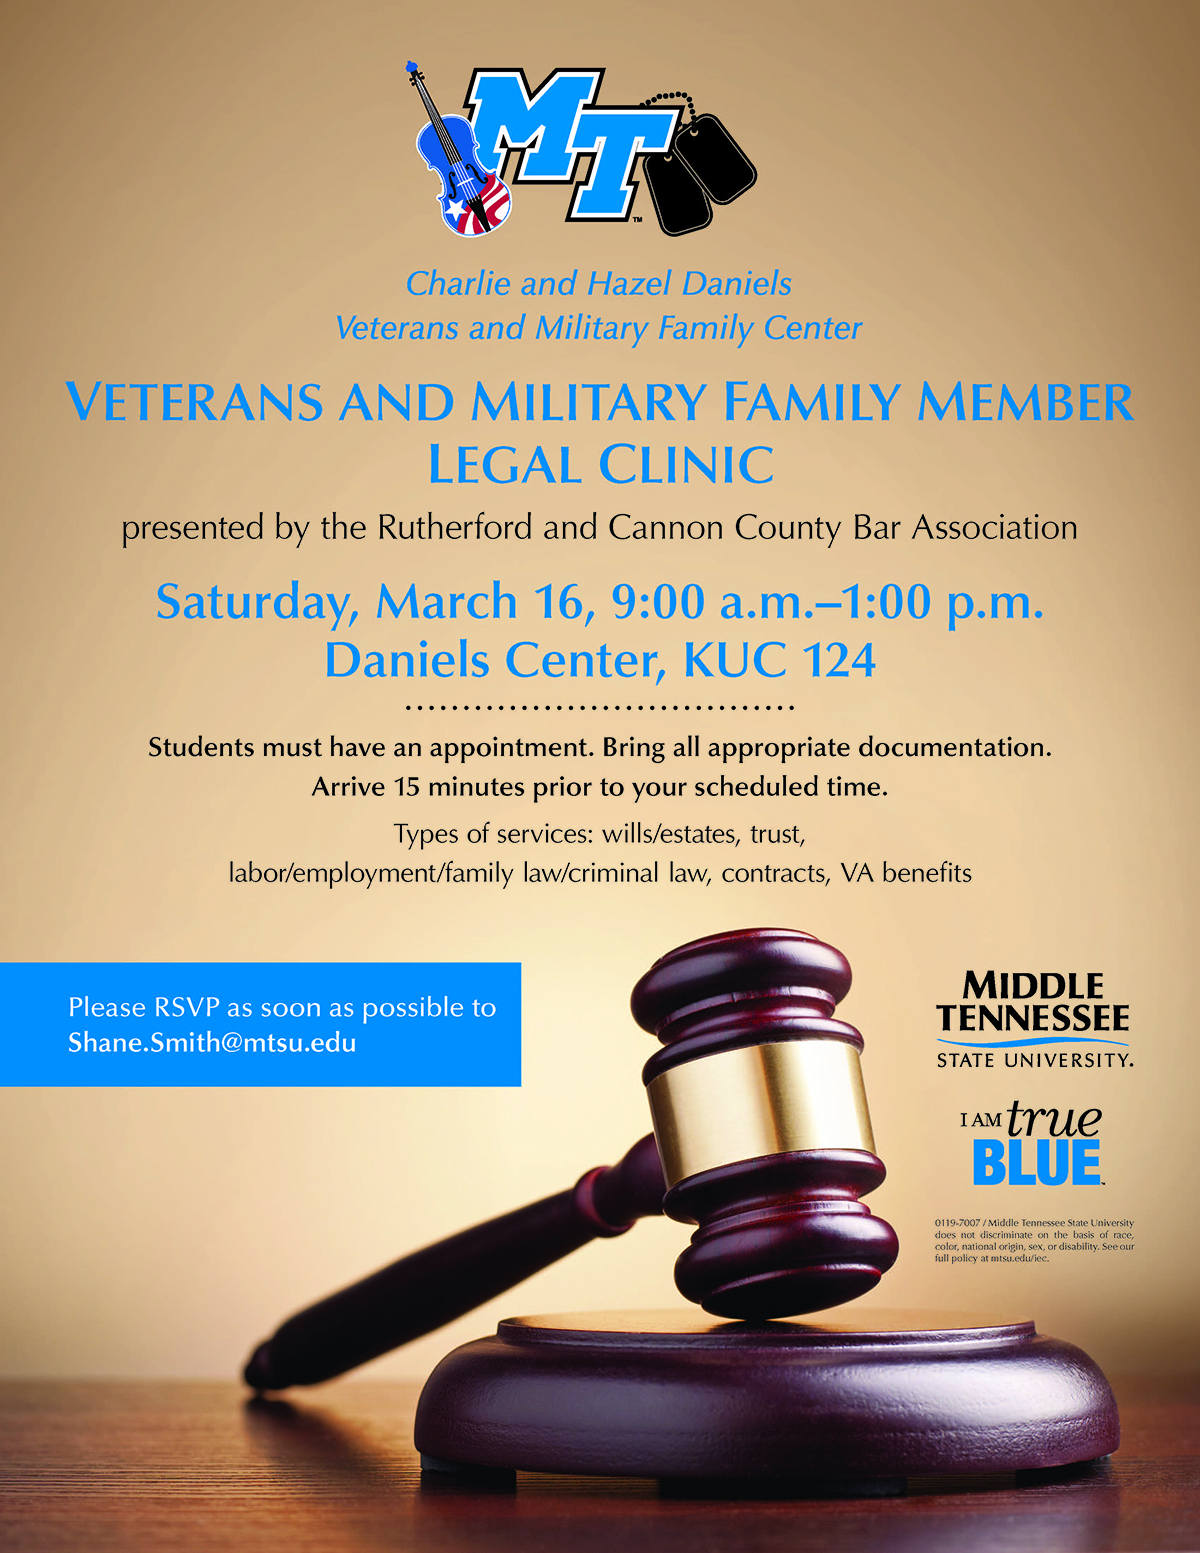 2019 veterans legal clinic flyer